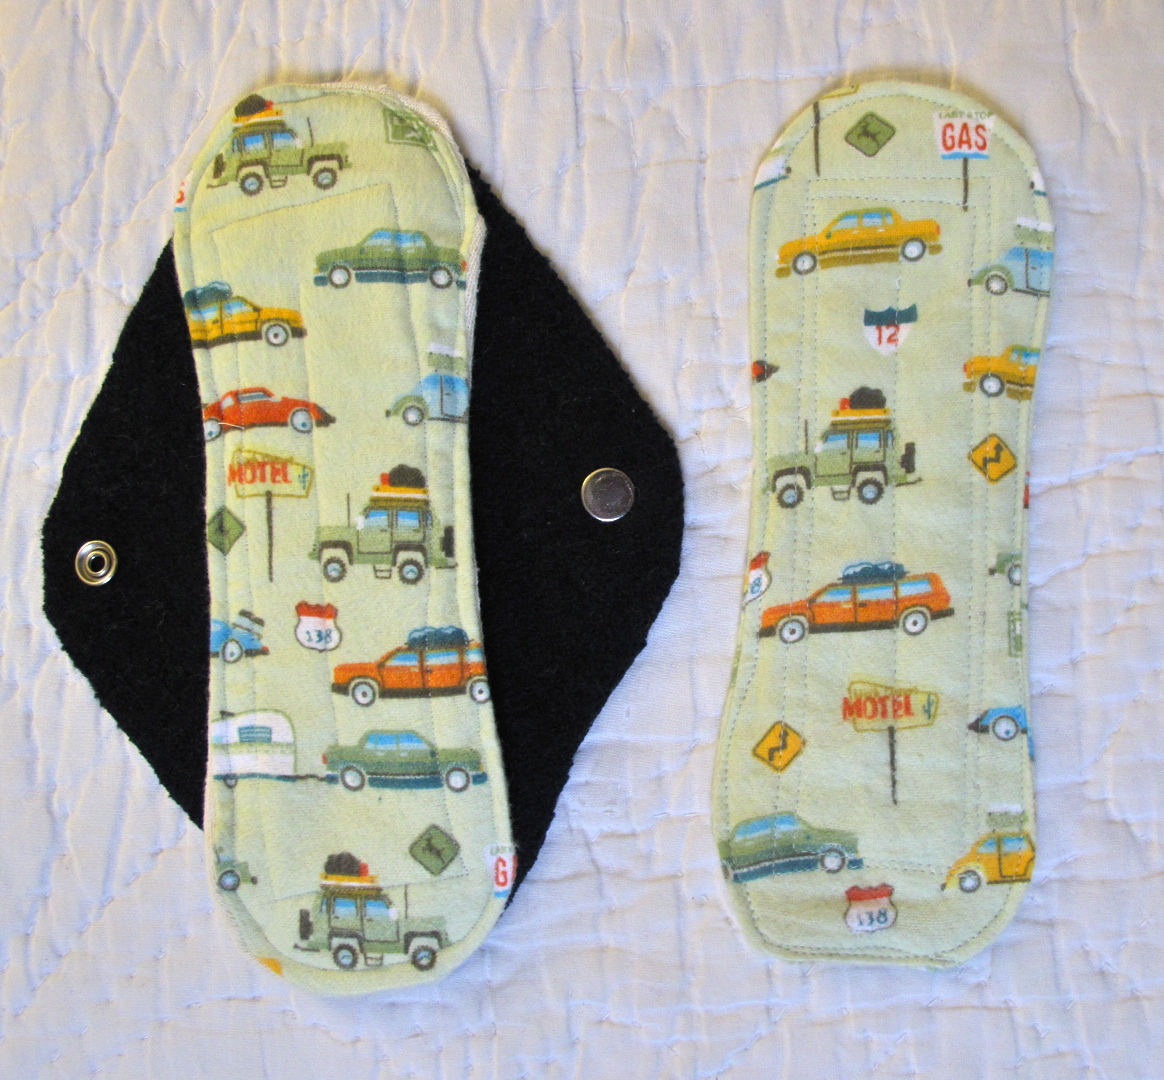 Diy Cloth Pads Tutorial: Resweater: It's Tutorial Tuesday! Make Your Own Cloth Pads